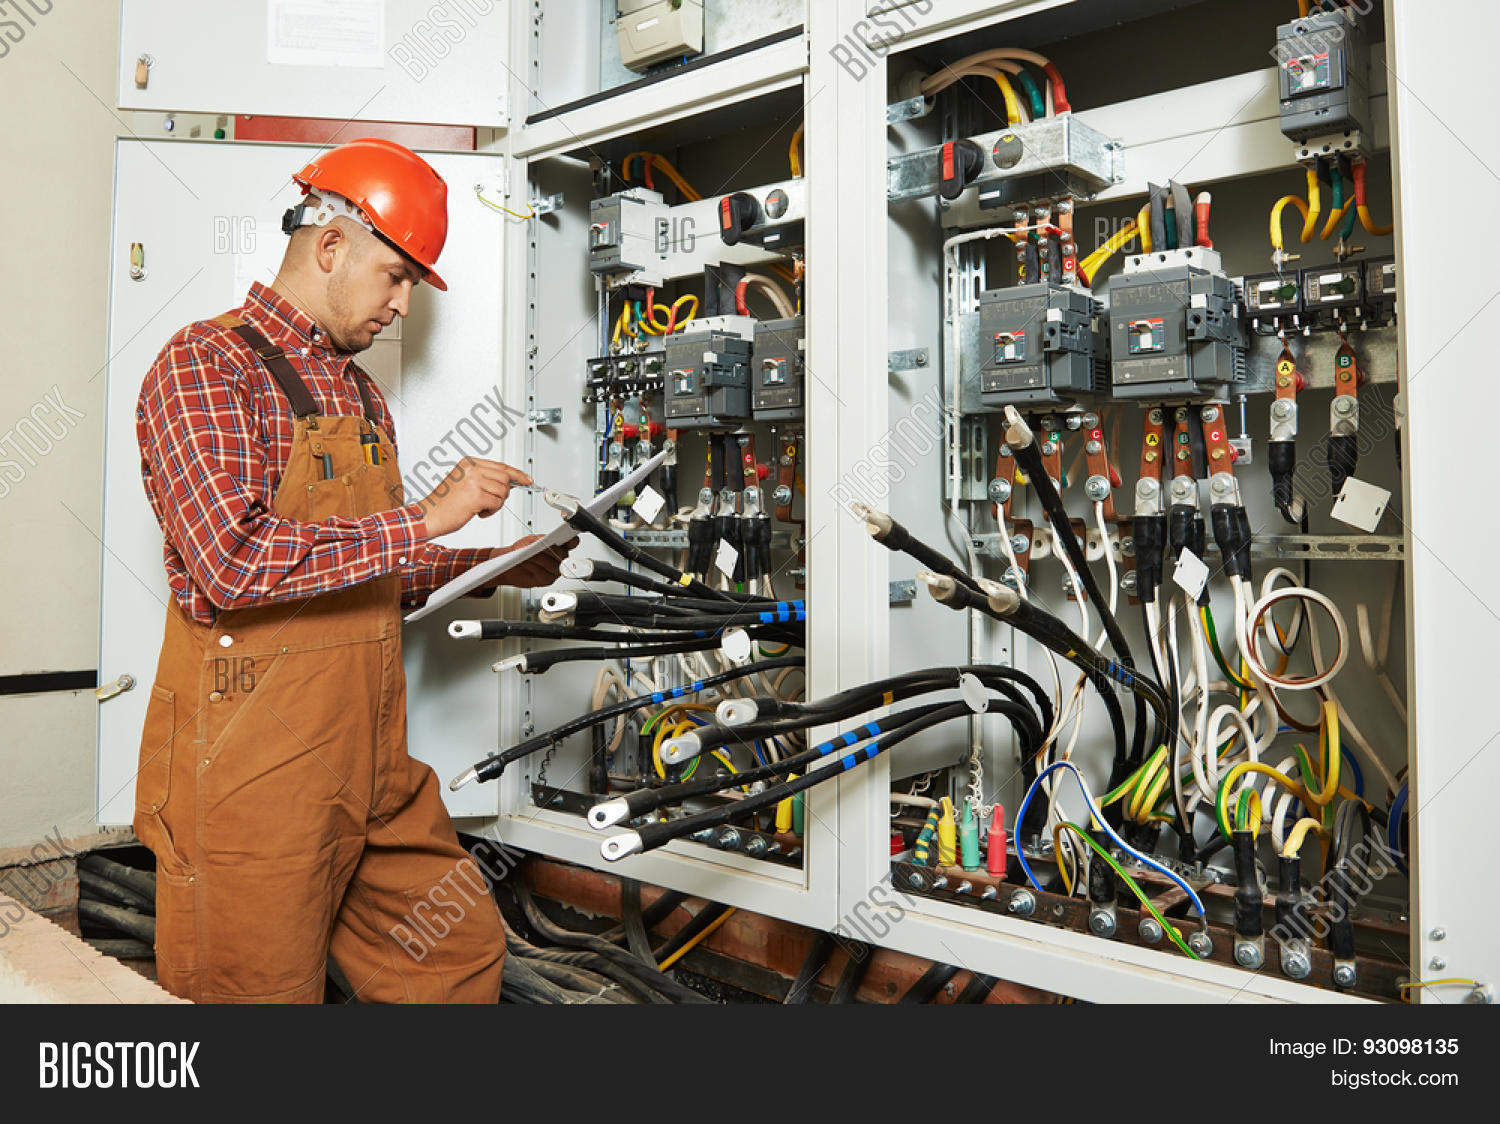 Adult Electrician Image Photo Free Trial Bigstock Wiring A Switch Board Builder Engineer Worker With Electric Scheme Plan In Front Of Fuse